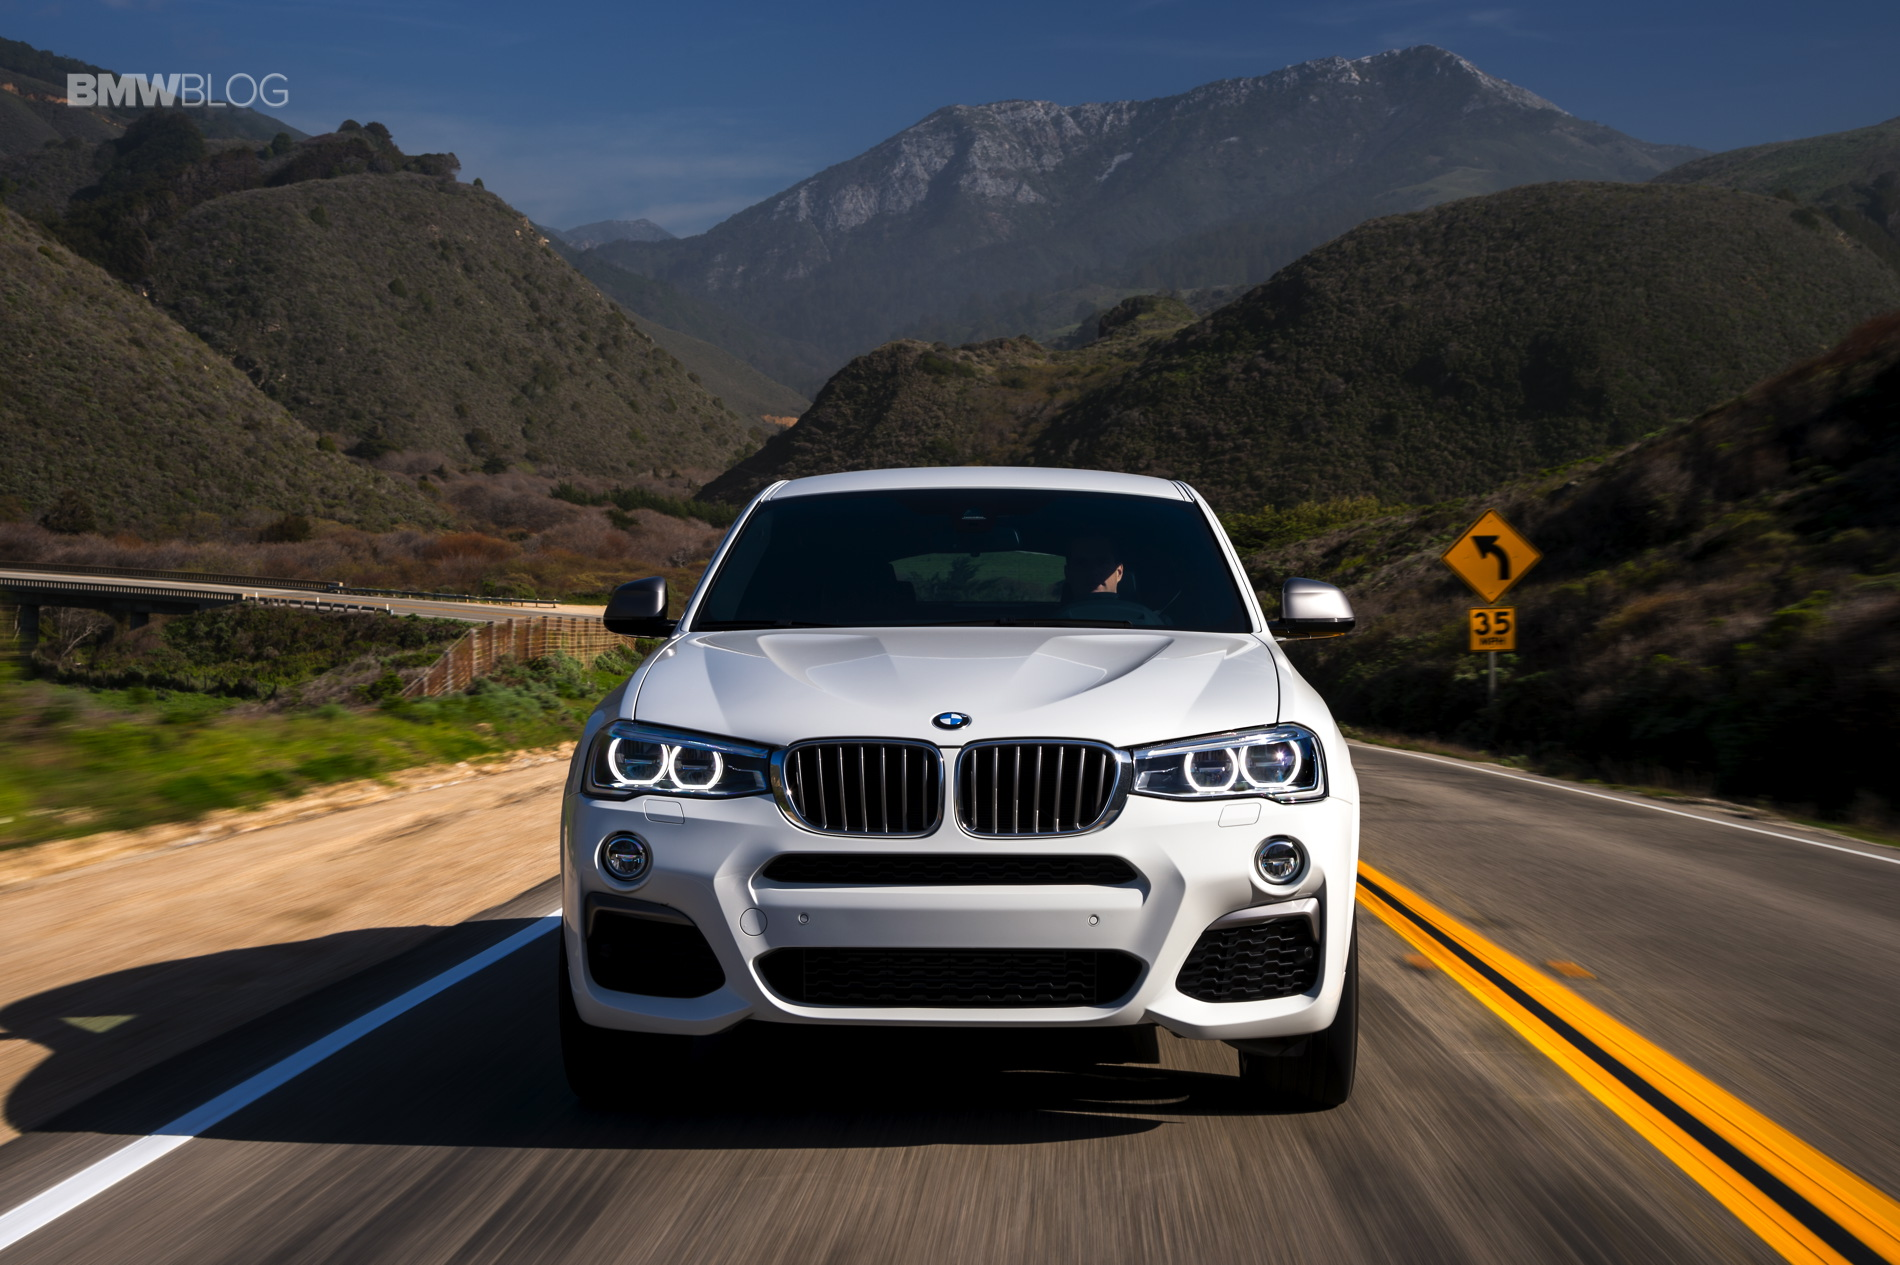 2016 BMW X4 M40i test drive review 32